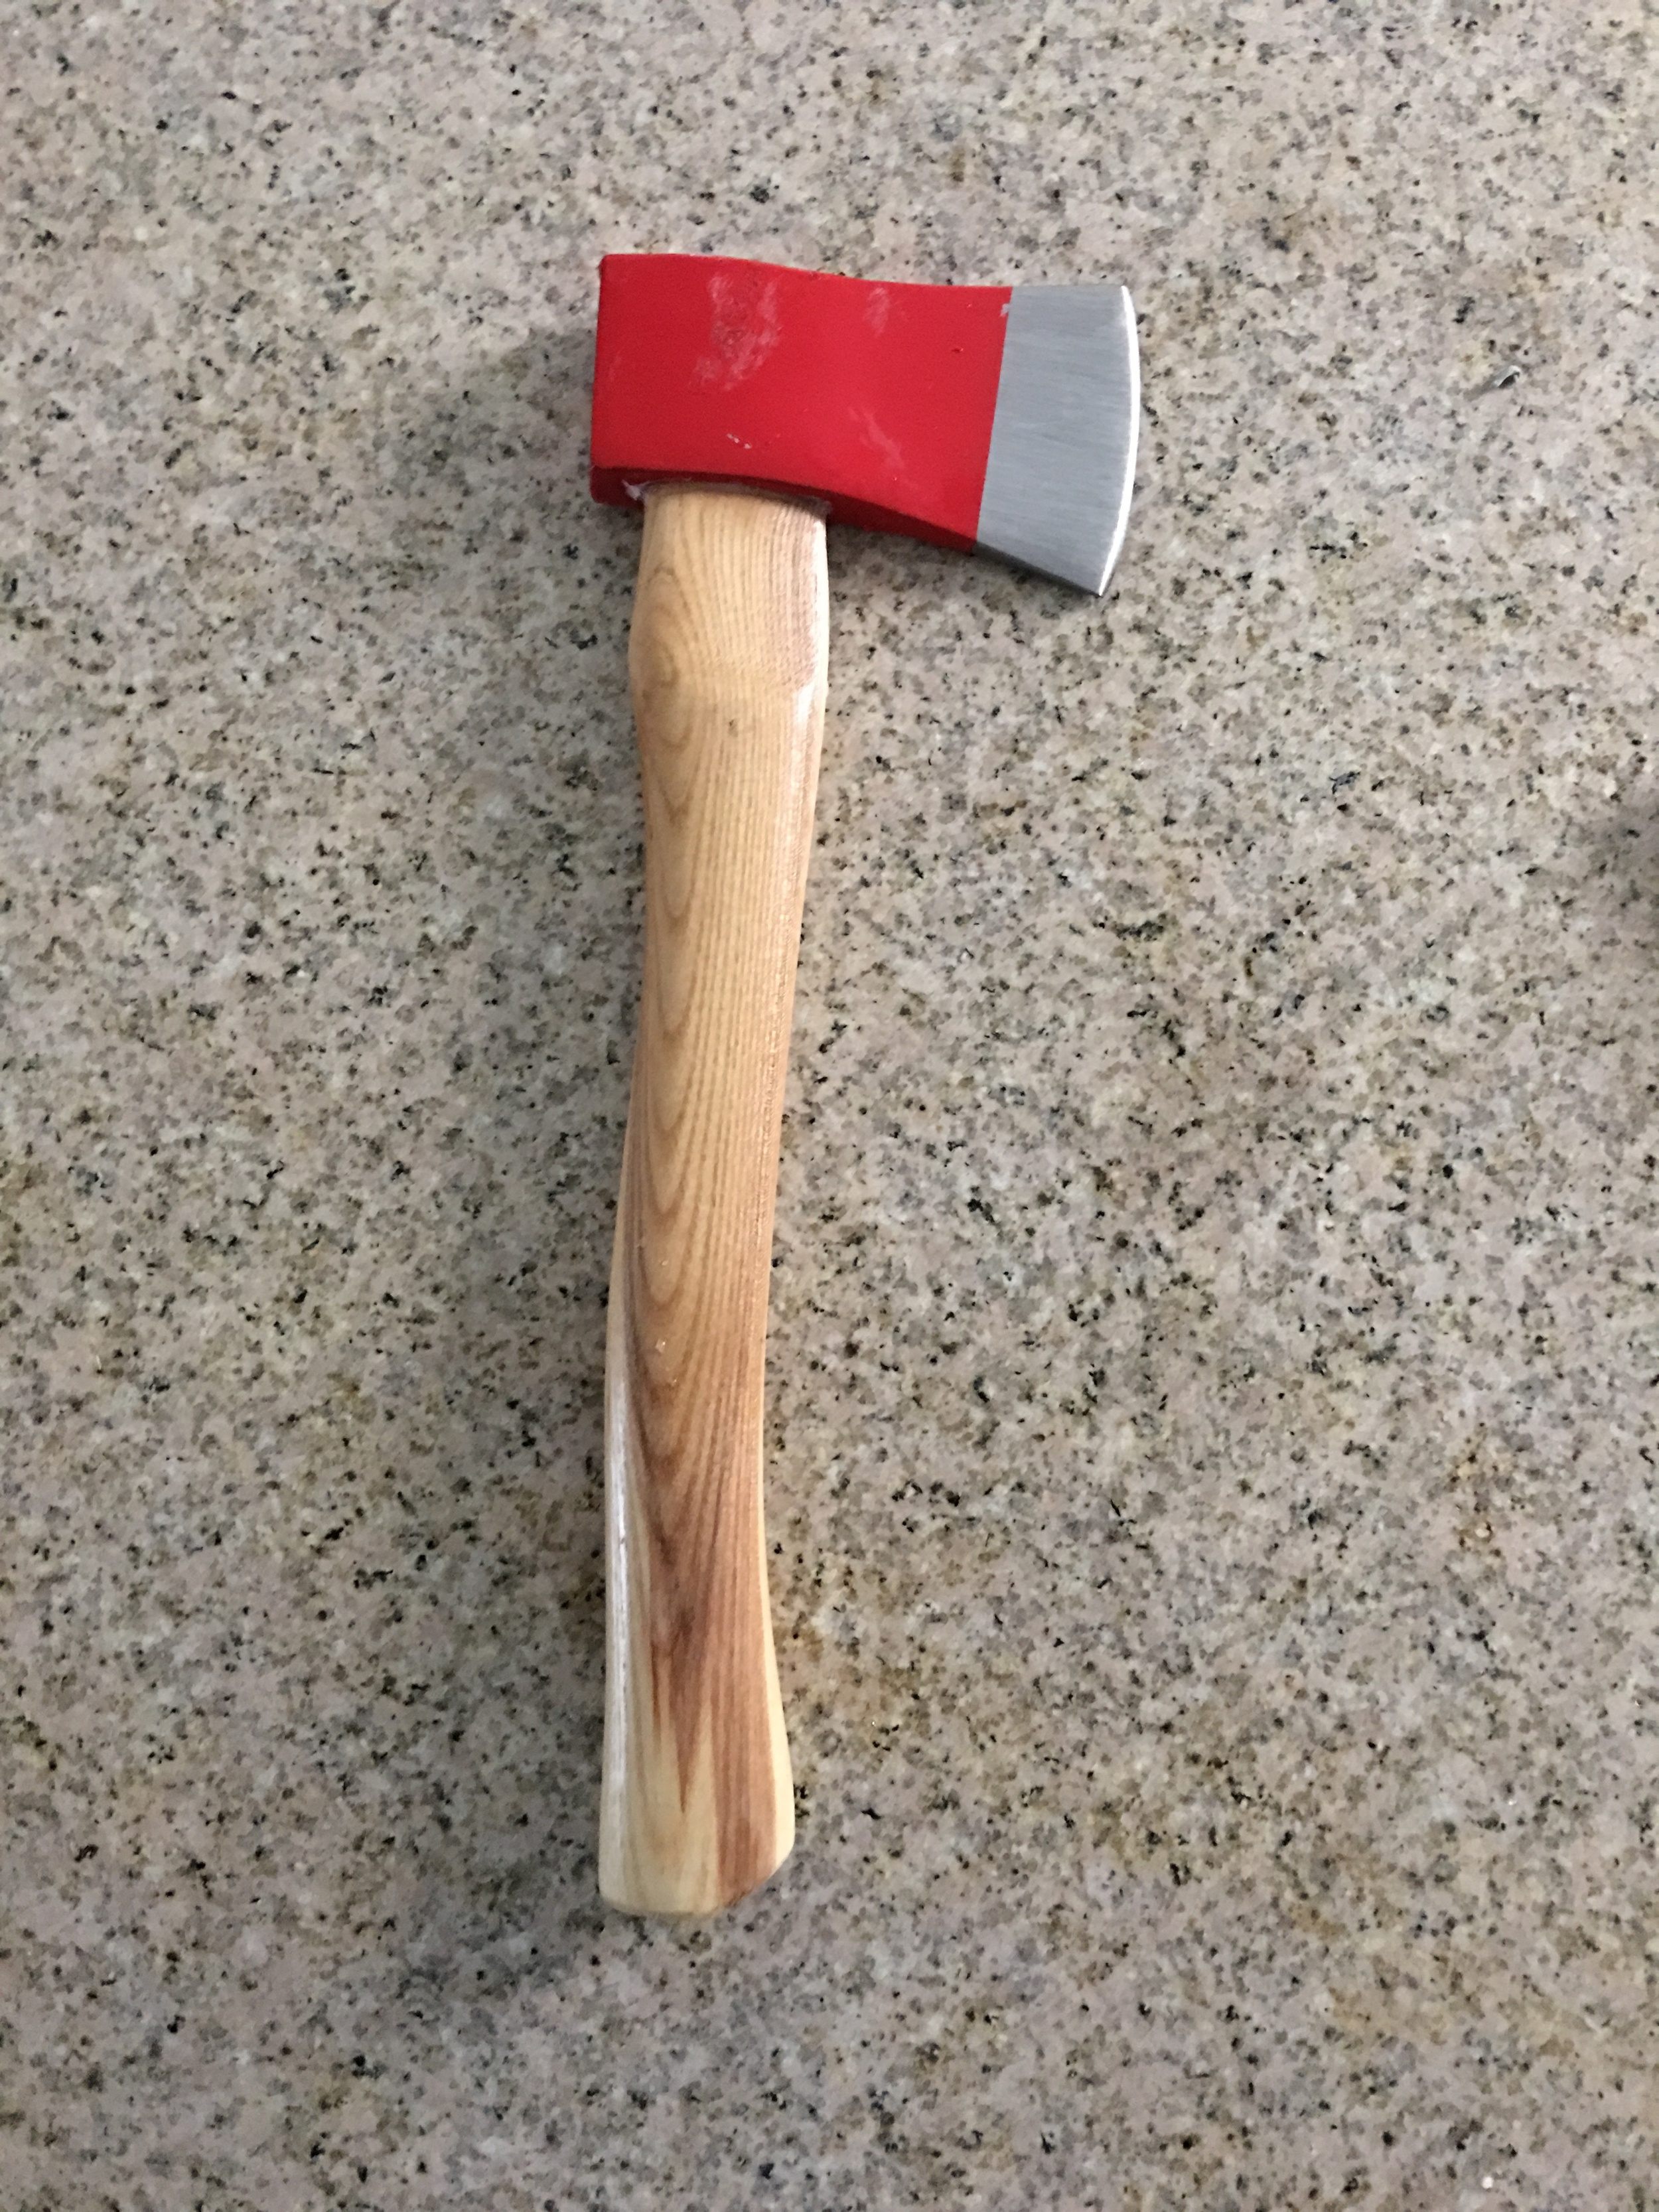 Lauren's Hatchet (Ax)